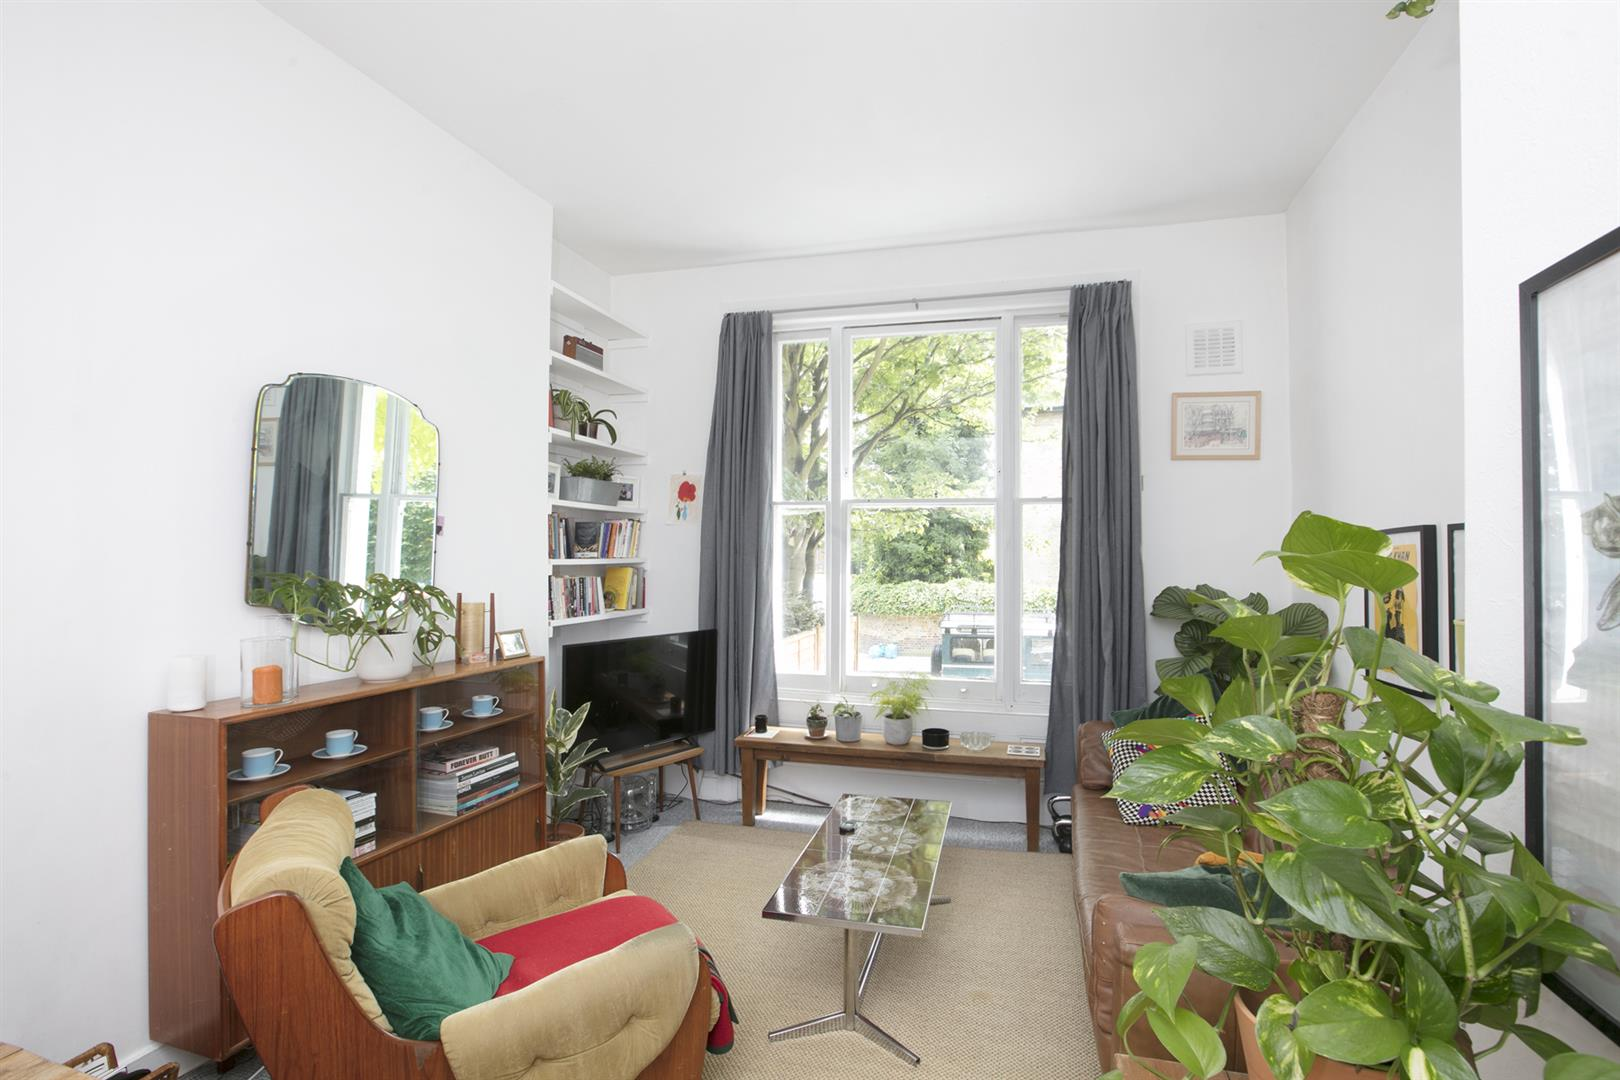 Flat - Conversion Sale Agreed in Talfourd Road, London 643 view2